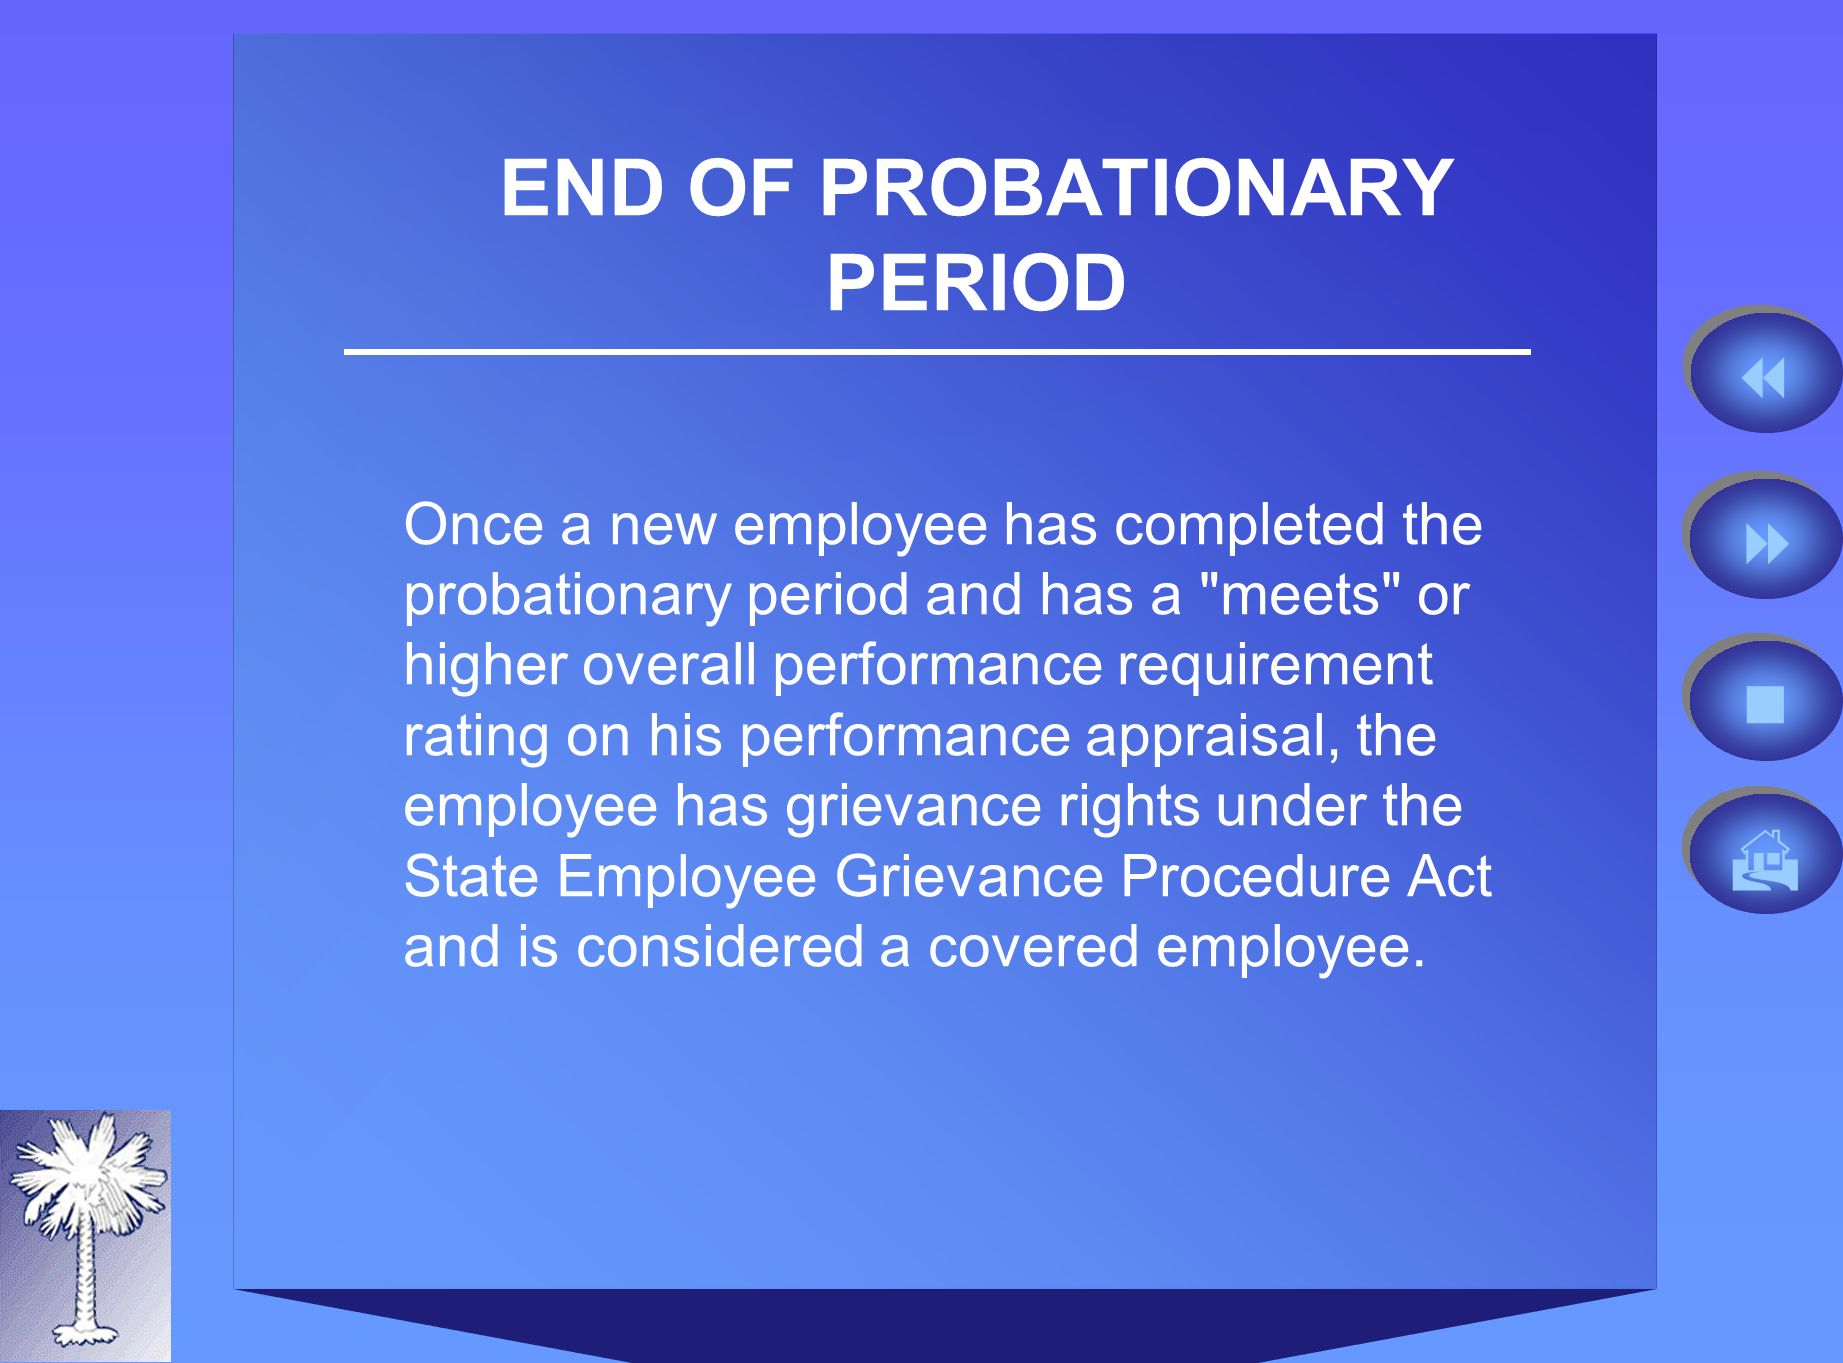 END OF PROBATIONARY PERIOD Once a new employee has completed the probationary period and has a meets or higher overall performance requirement rating on his performance appraisal, the employee has grievance rights under the State Employee Grievance Procedure Act and is considered a covered employee.